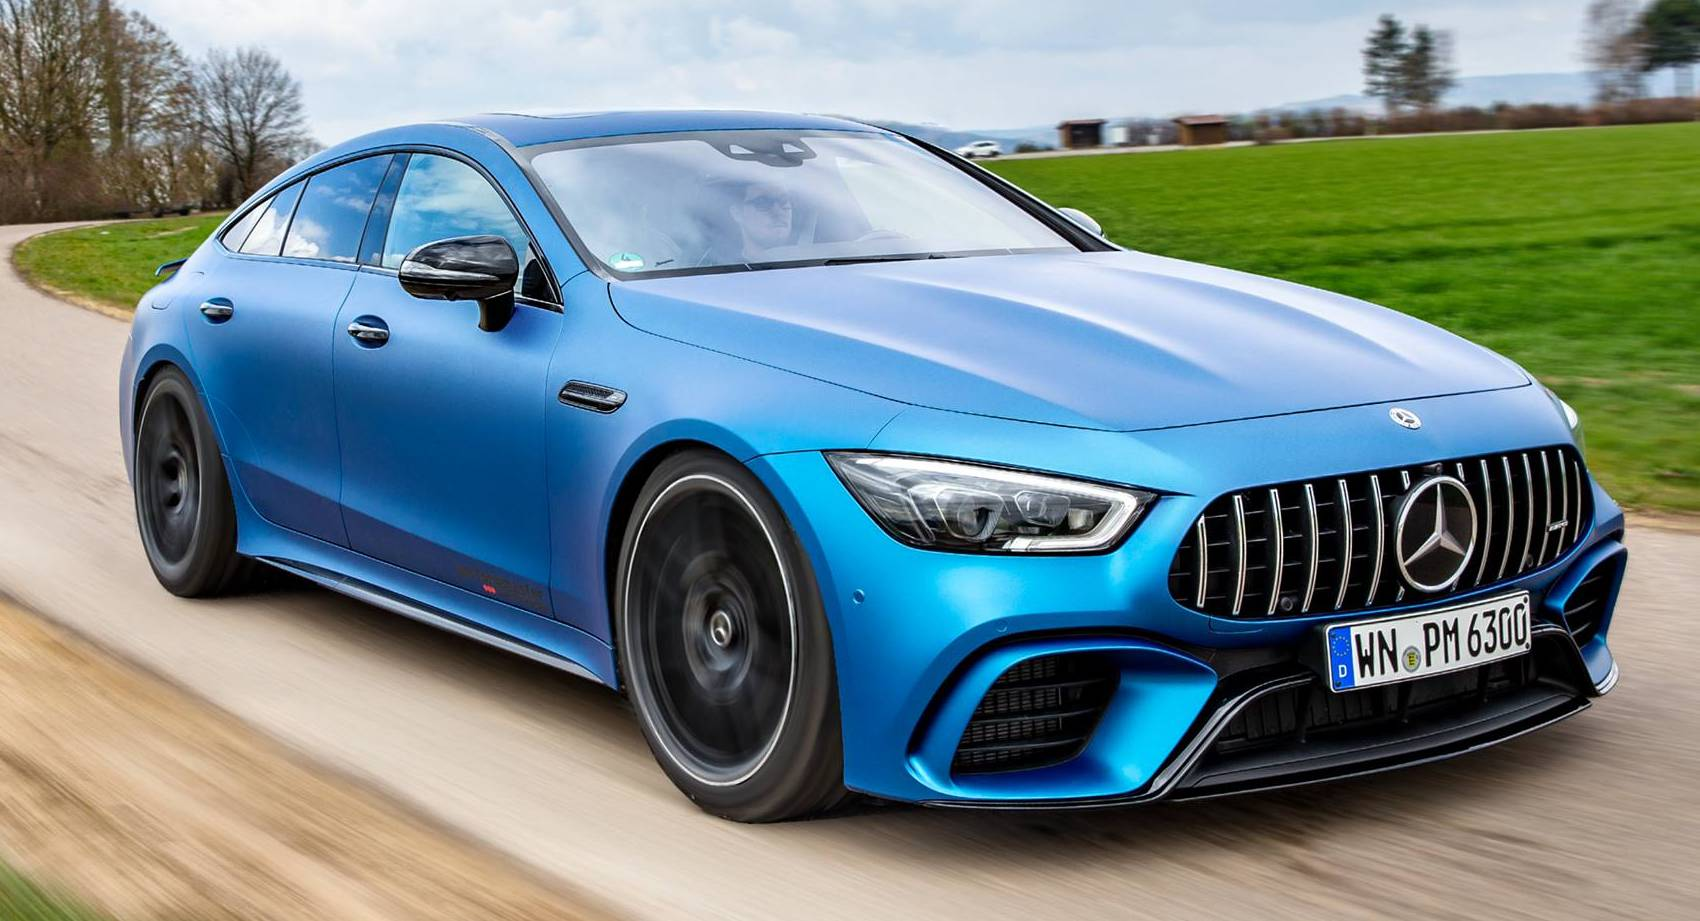 performmaster dials up mercedes amg gt 63 s to 730 hp carscoops. Black Bedroom Furniture Sets. Home Design Ideas